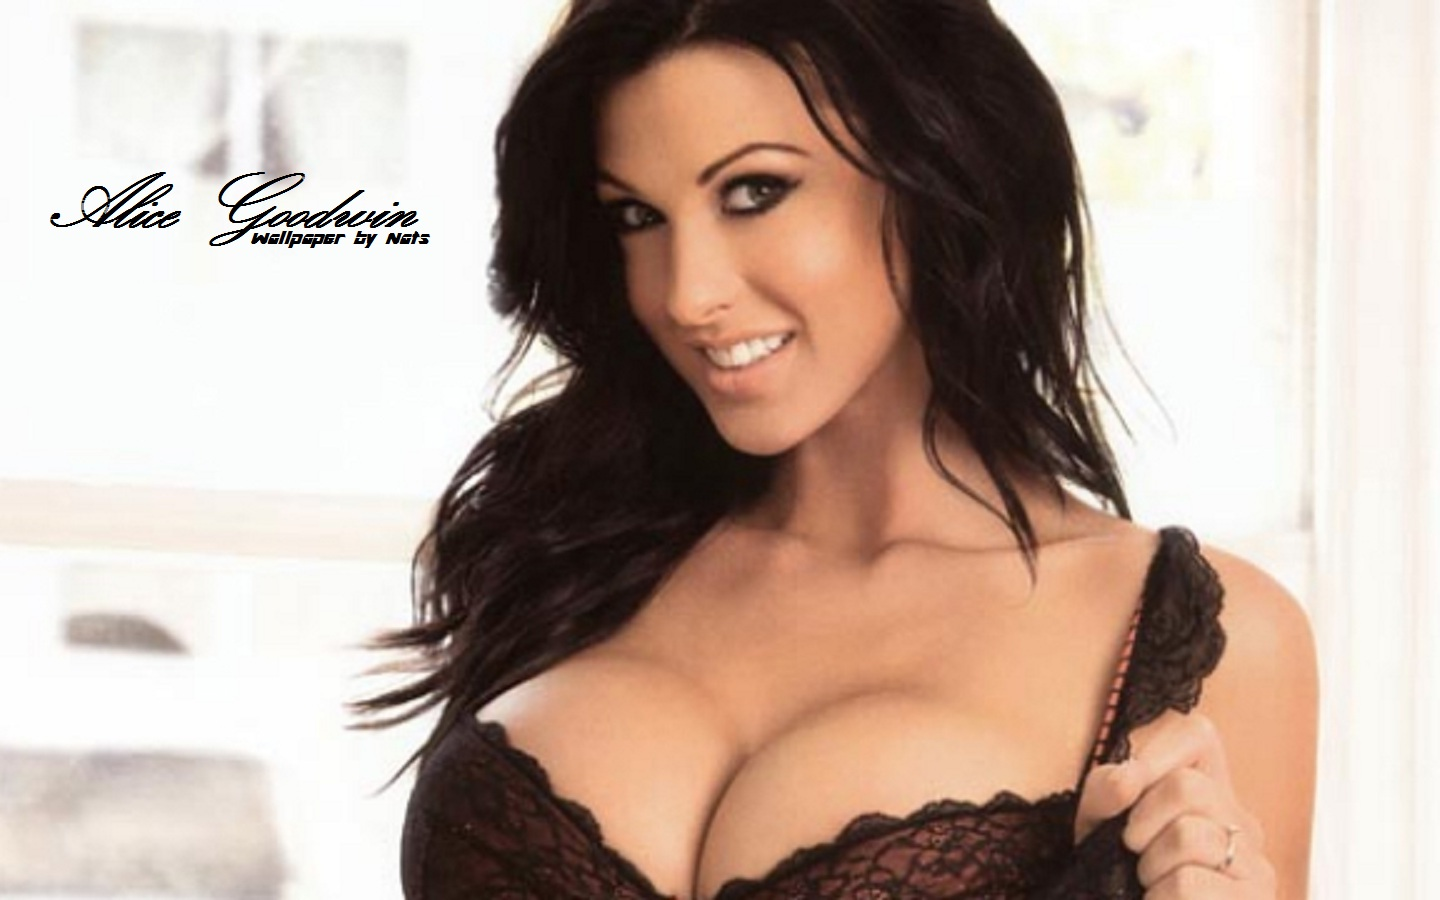 Alice Goodwin Celebrities Female Wallpaper